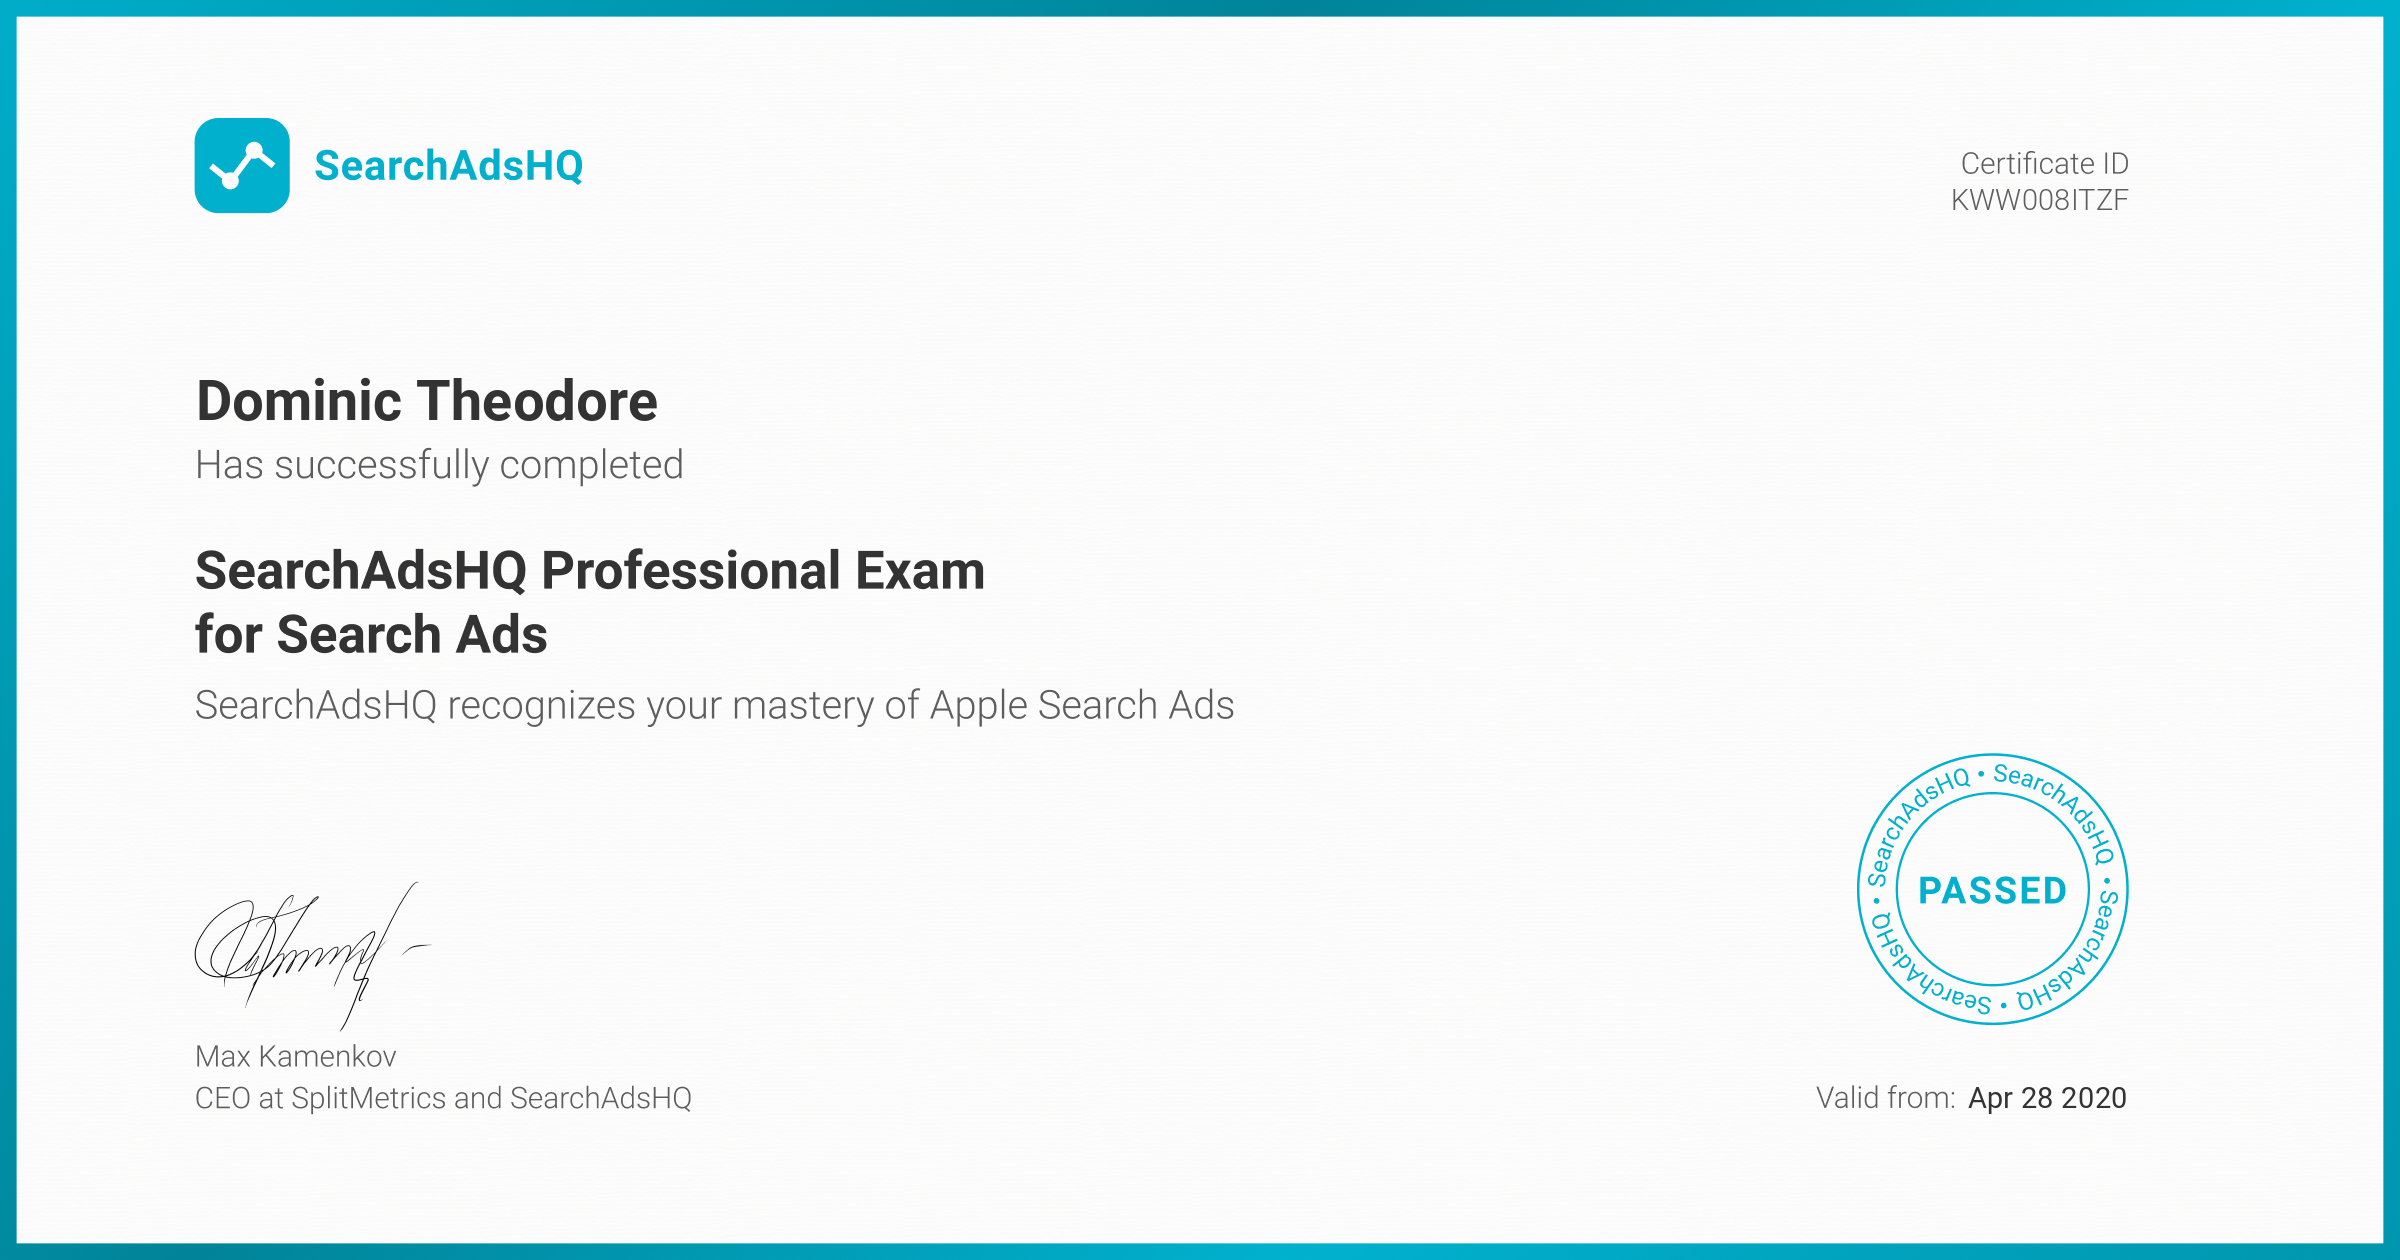 Certificate for Dominic Theodore | SearchAdsHQ Professional Exam for Search Ads